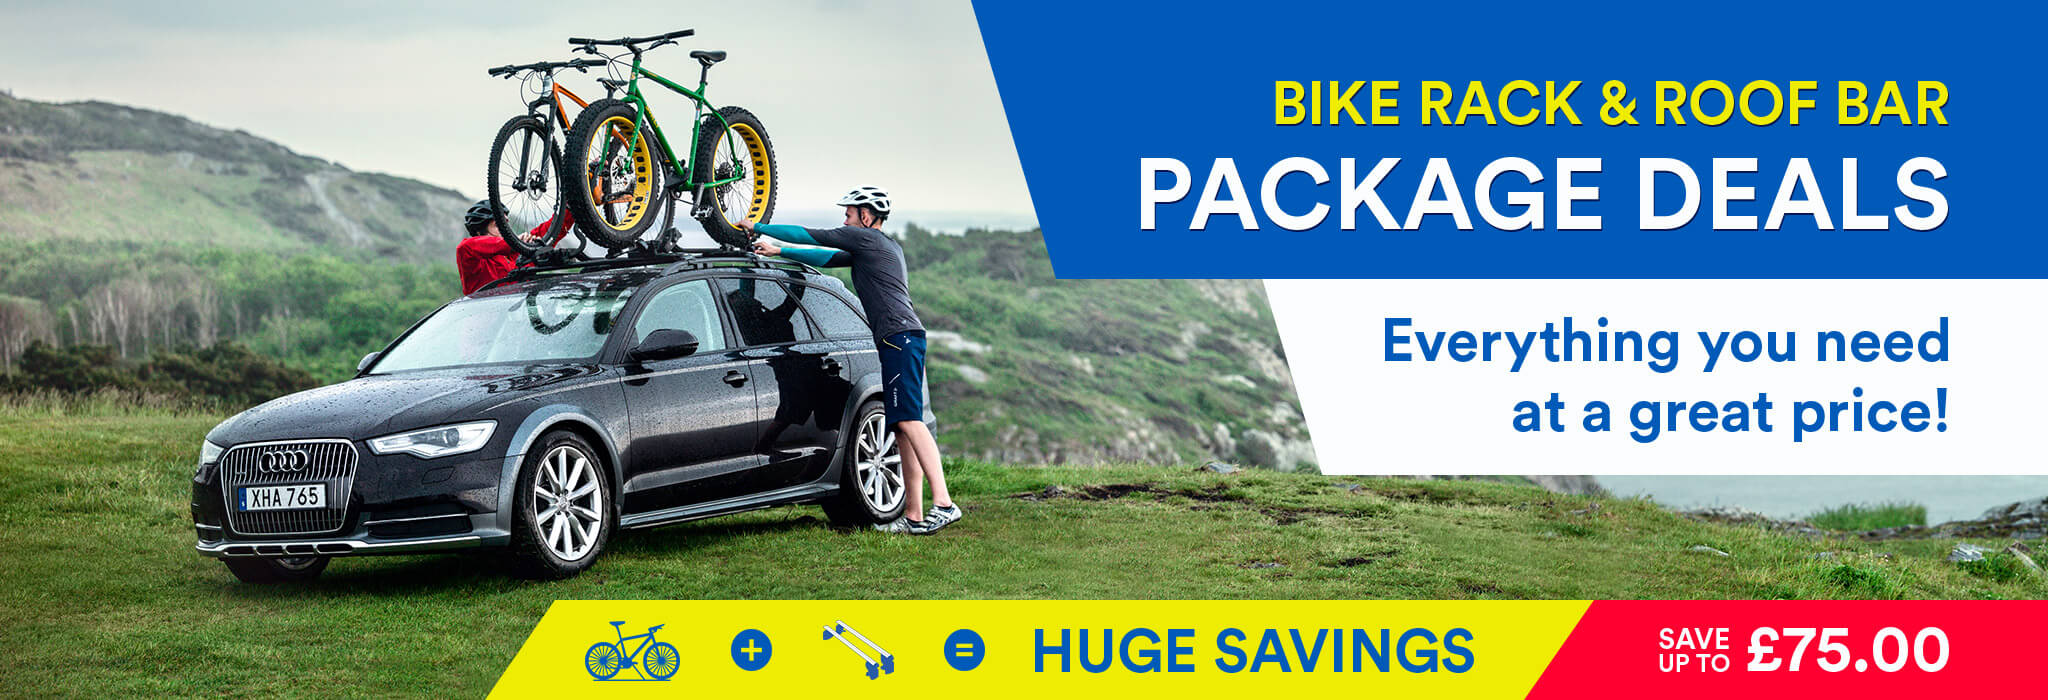 Bike Carrier & Roof Bar Package Deals: Huge Savings!